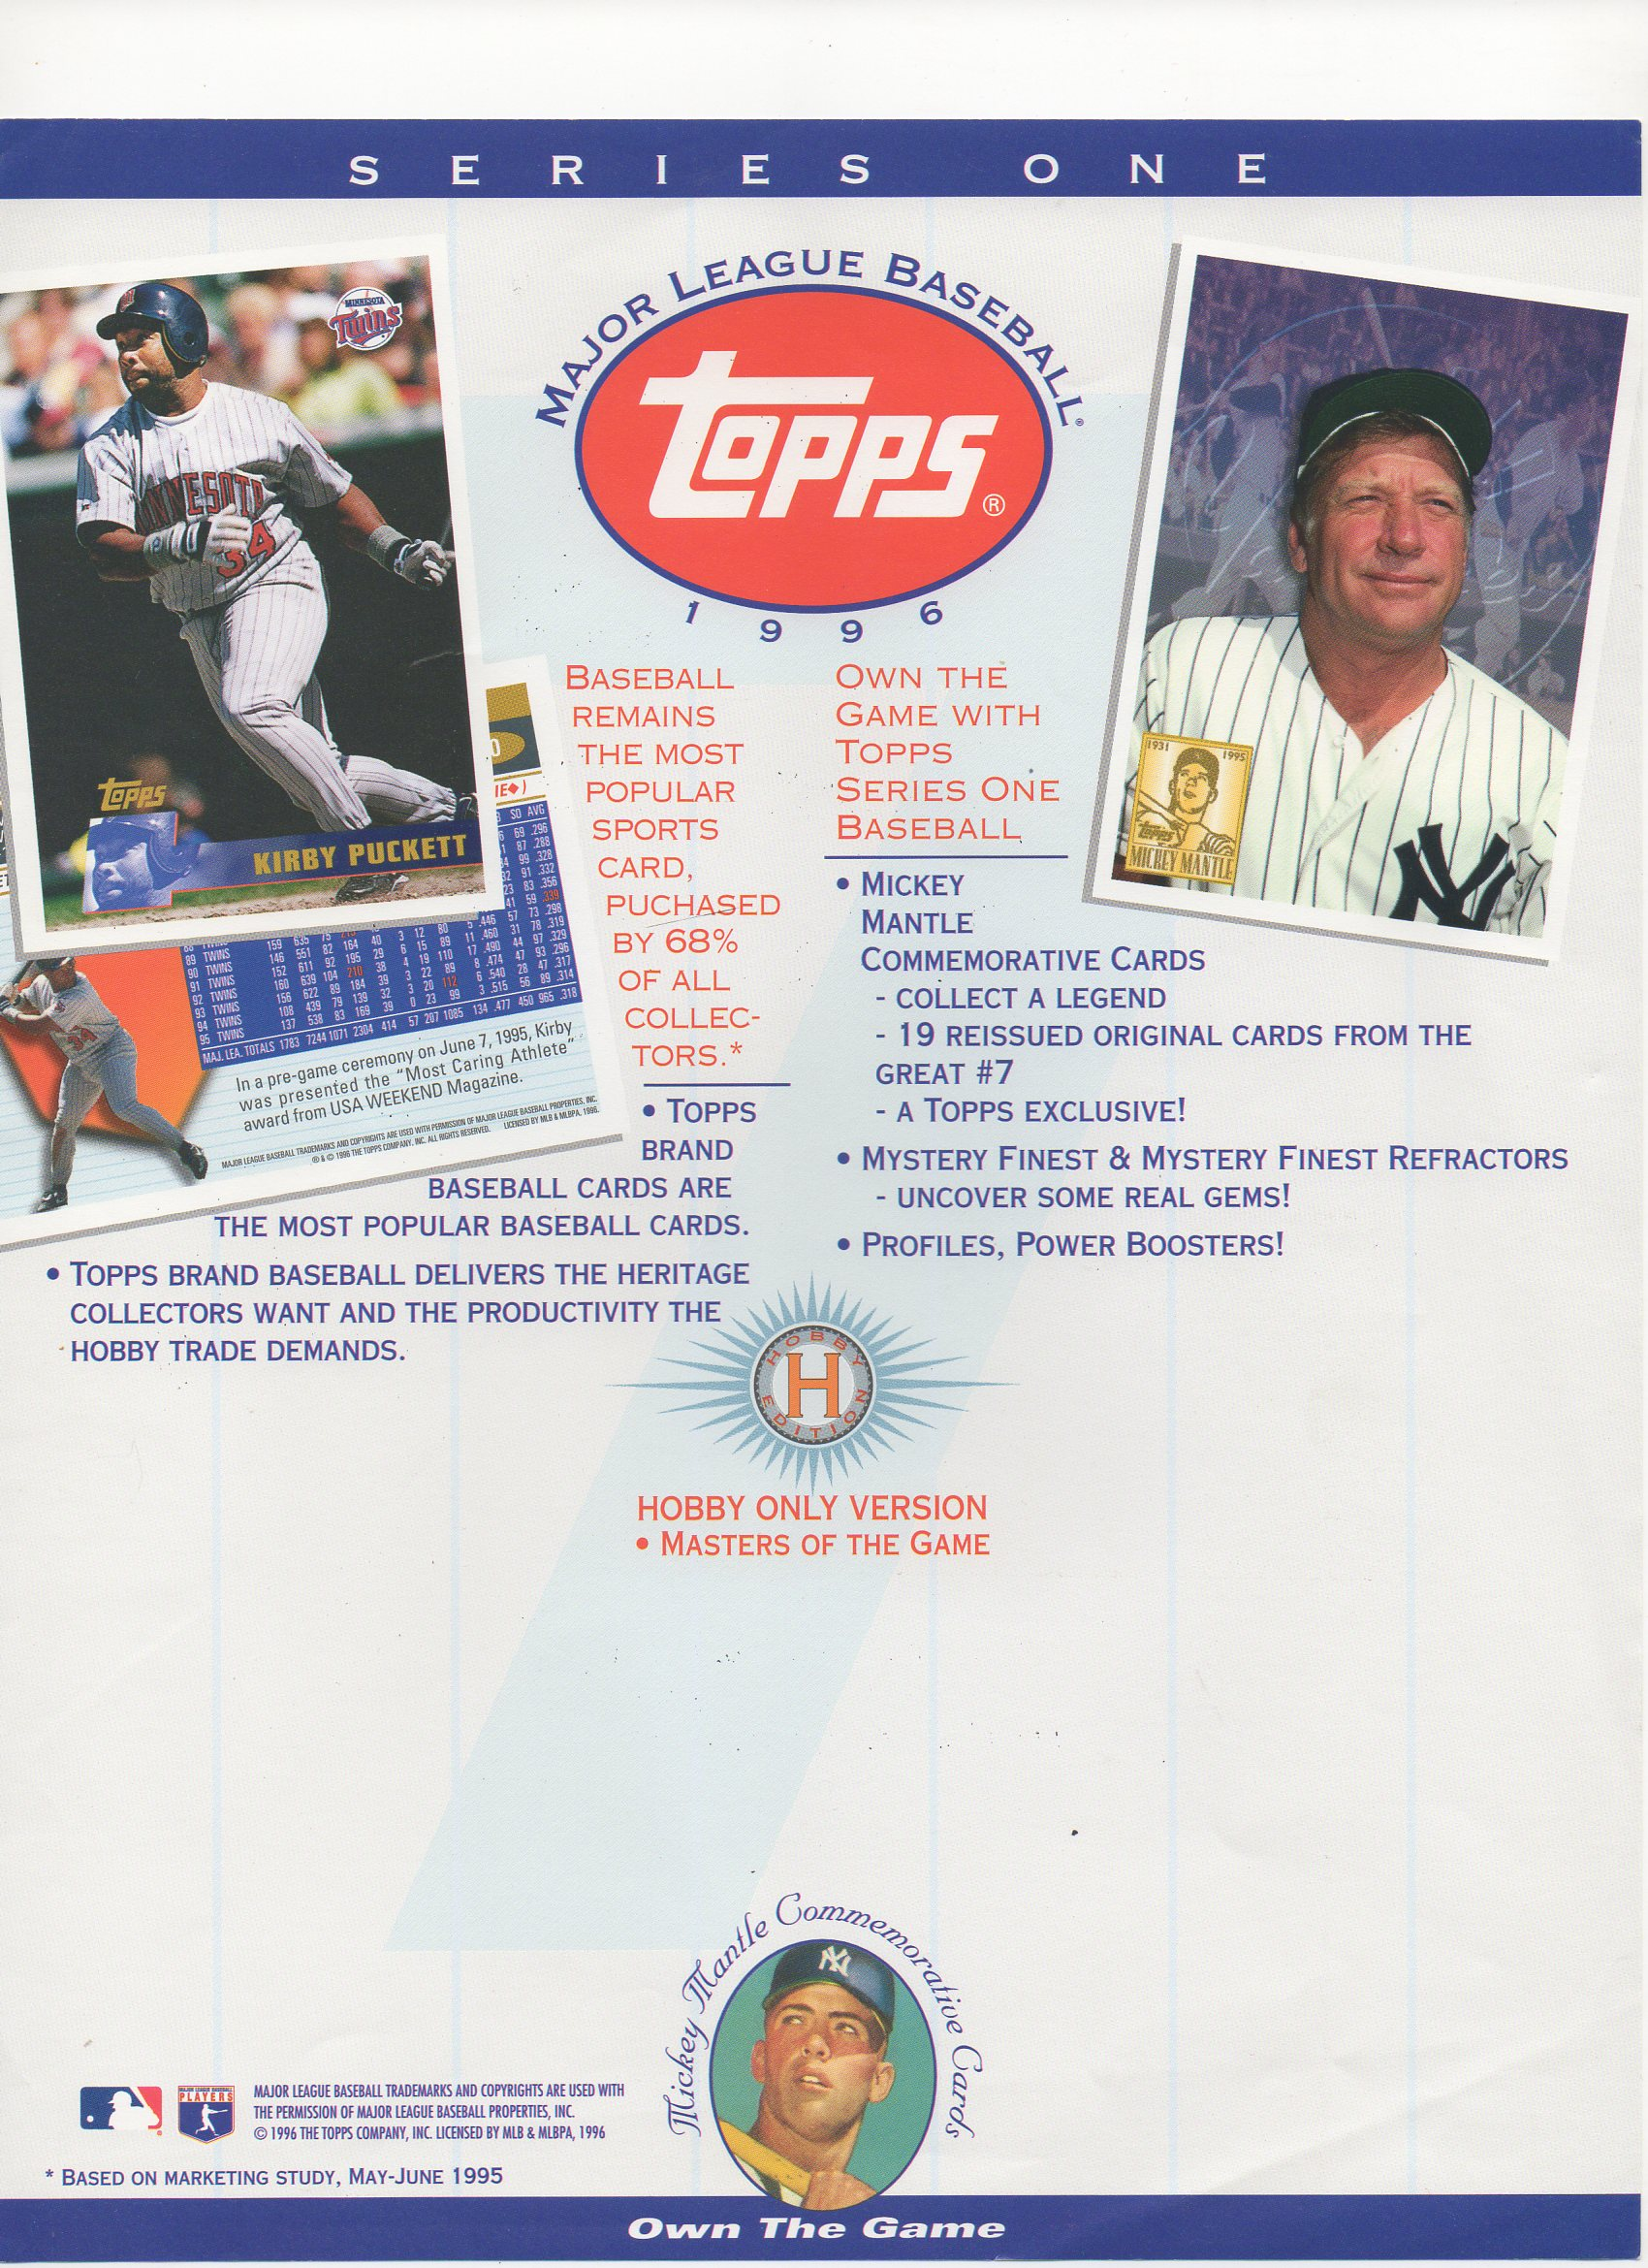 1995 topps series 1, blank back flyer